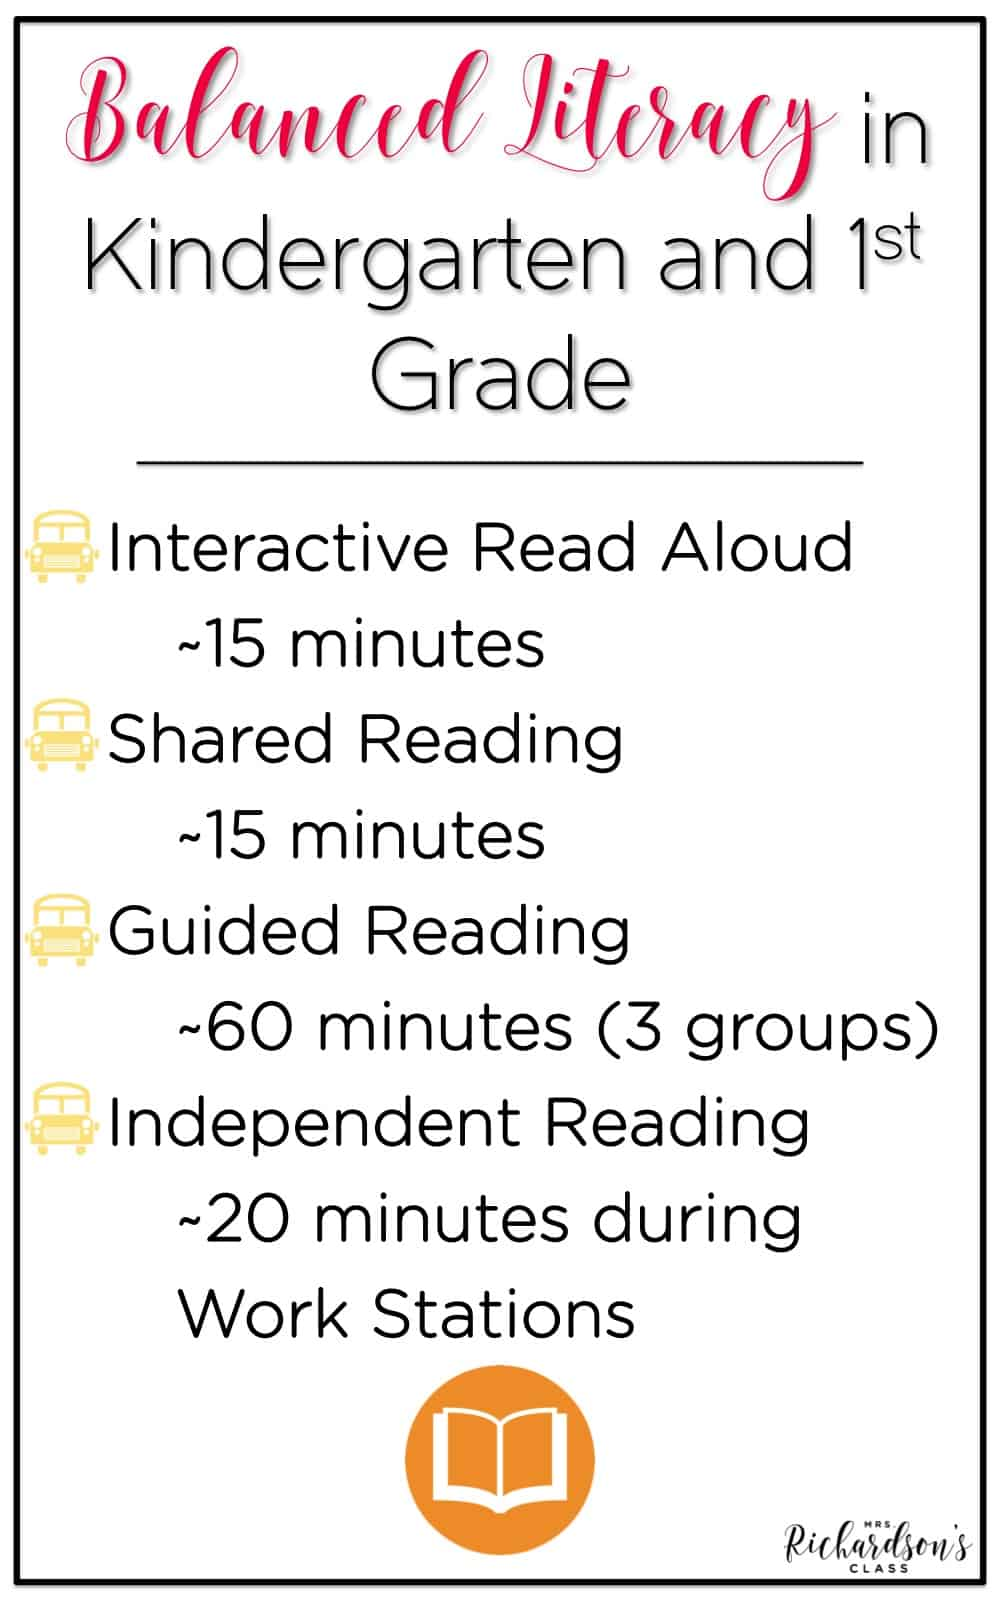 Worksheet Reading For First Grade balanced literacy in kindergarten and first grade mrs is a crucial part of the day see